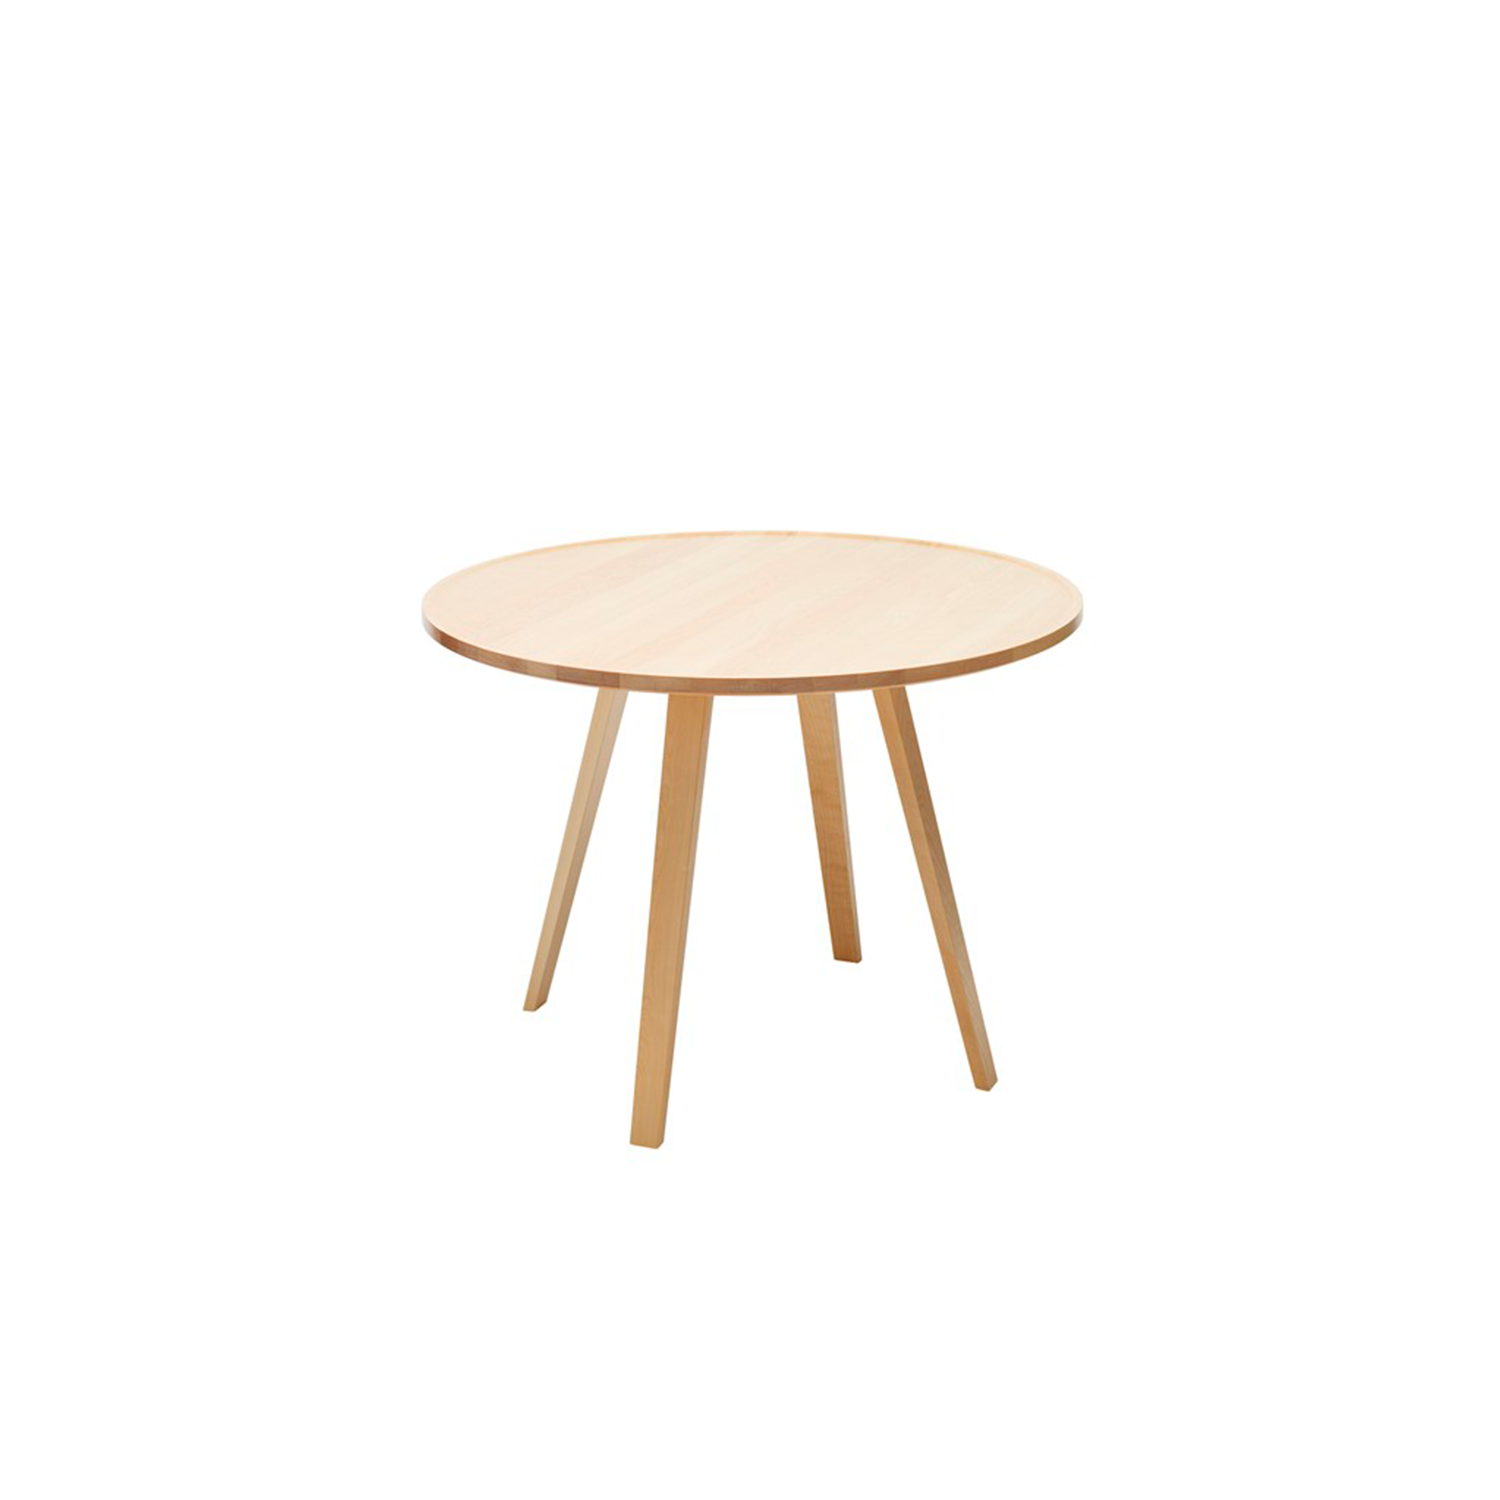 Mill Round Table - Mill (2012) is a table with a solid wooden top and legs. The tabletop has been milled down to produce its distinctive appearance. Mill is available with a round, square or rectangular top in a number of different sizes and in heights of 460, 590 and 720 mm. The table is made of solid wood, so it can be sanded down and relacquered a number of times, making it suitable for use in settings where it is subjected to a lot of wear and tear.  Mill comes in a choice of oak, birch, ash, standard stains on ash and white glazed oak or ash. The table is also available in standard colors with tabletop made in MDF. Special sizes and other finishes upon request. You can use Mill to furnish cafés, kitchens and living rooms, or in hotels, schools, waiting areas etc.  Additional heights and dimensions are available, please see technical sheet attached and enquire for more details. | Matter of Stuff